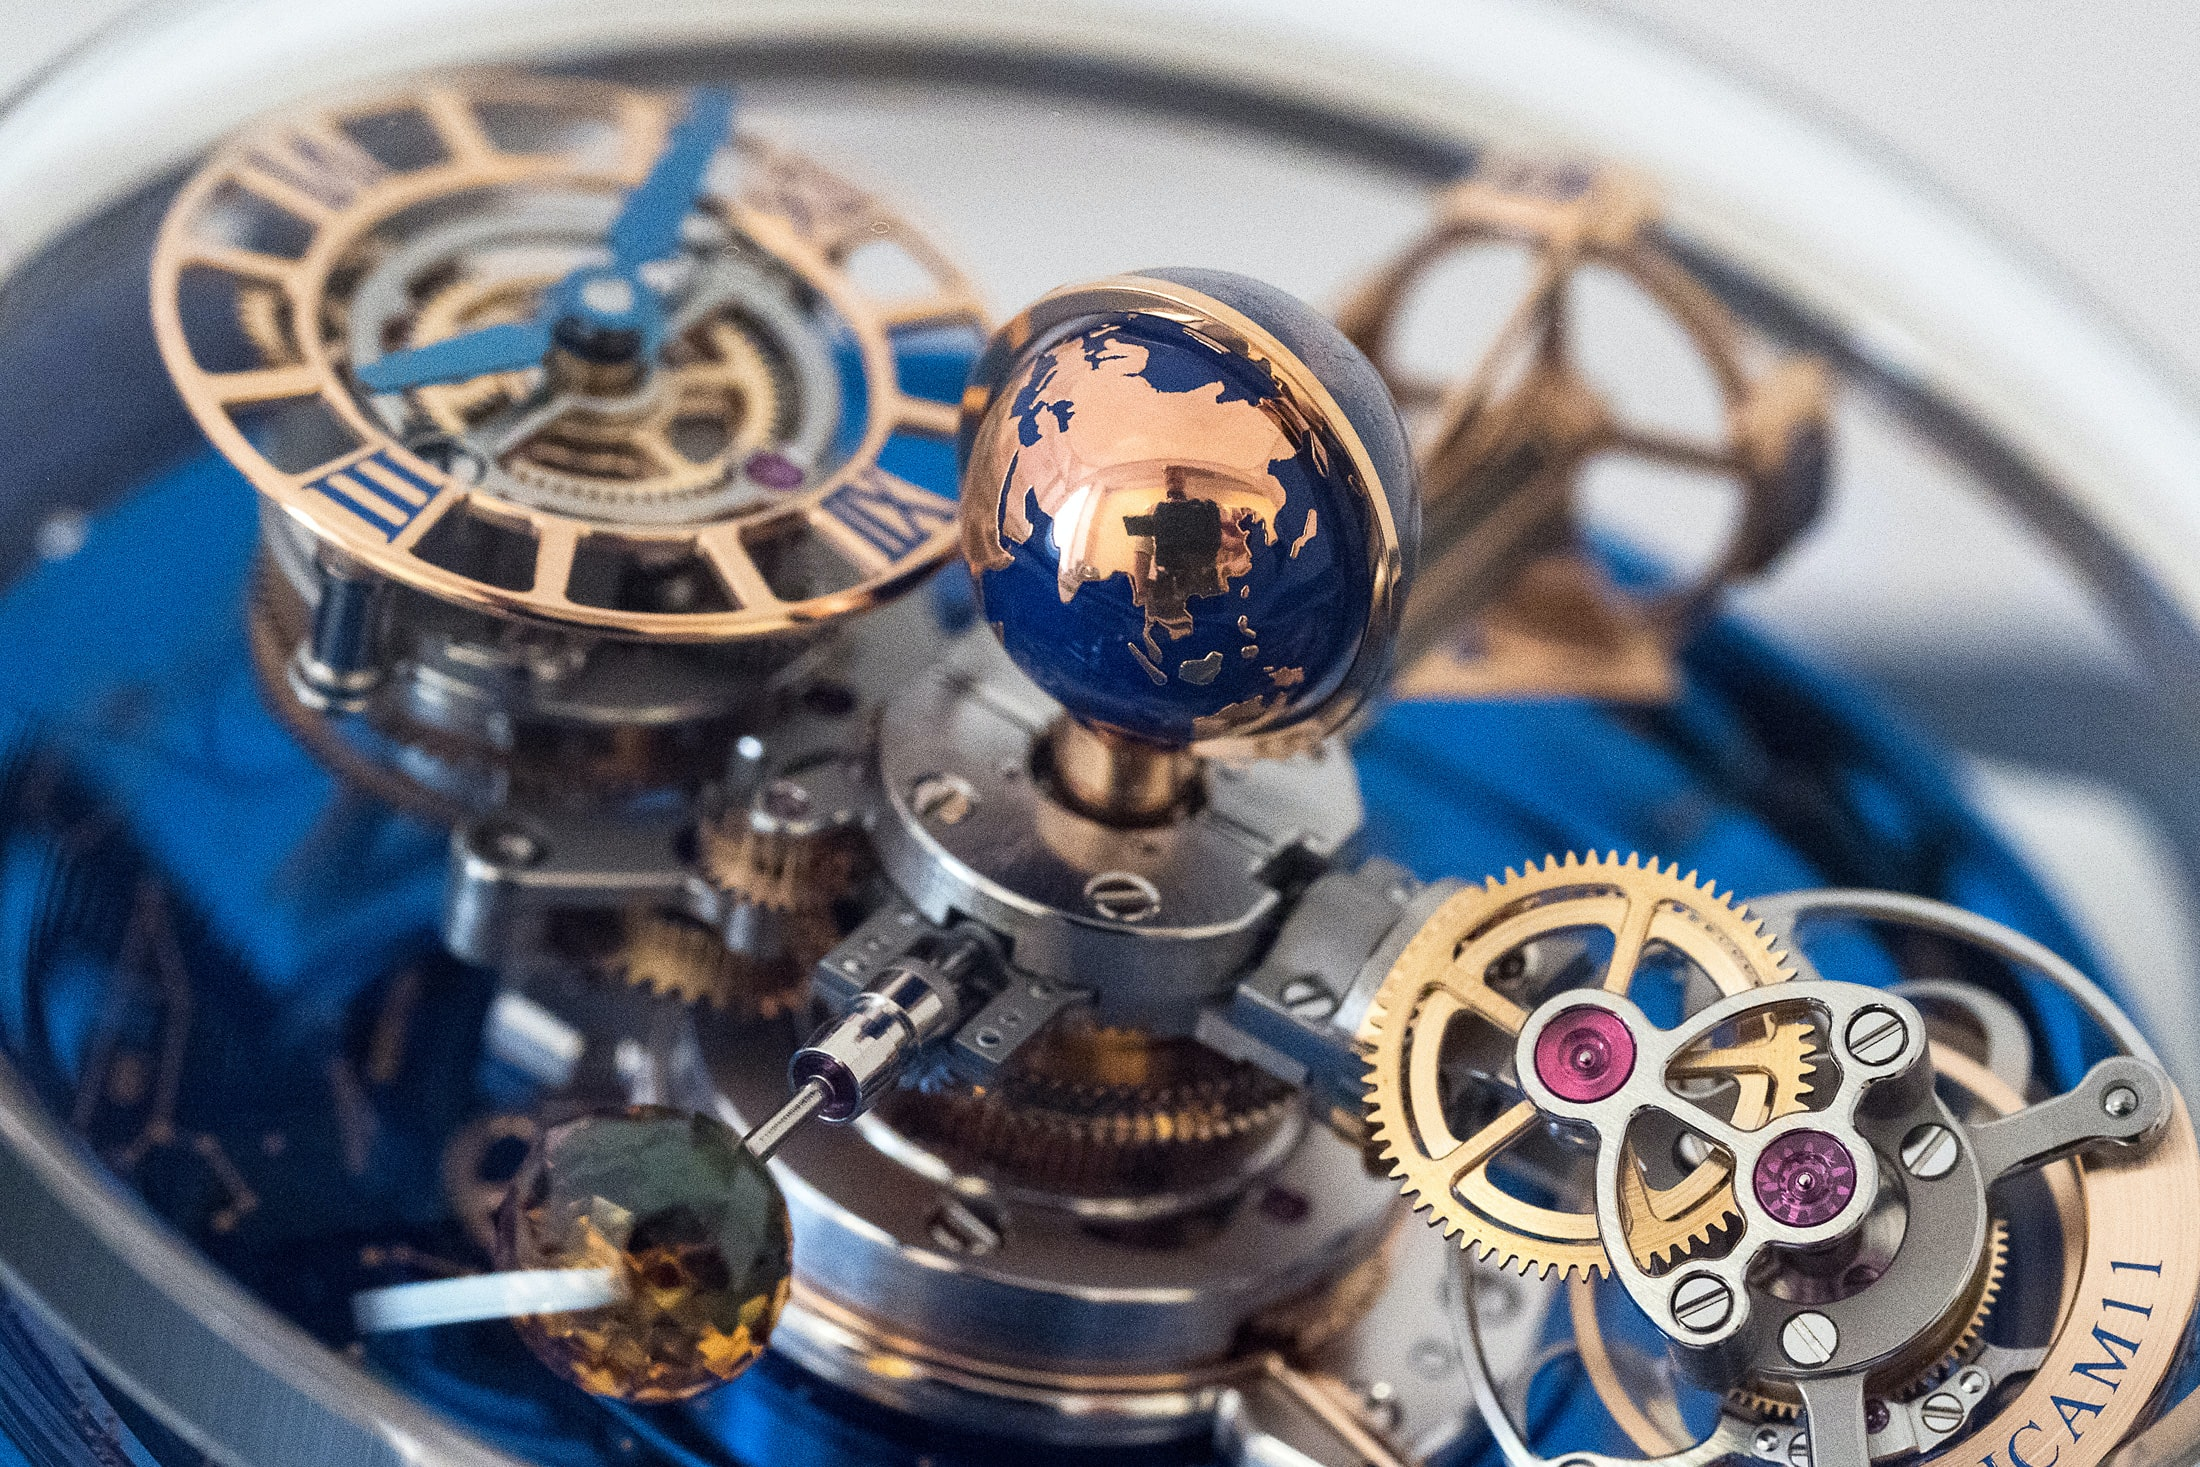 Hands-On: The Jacob & Co. Astronomia Sky Hands-On: The Jacob & Co. Astronomia Sky jacob 5